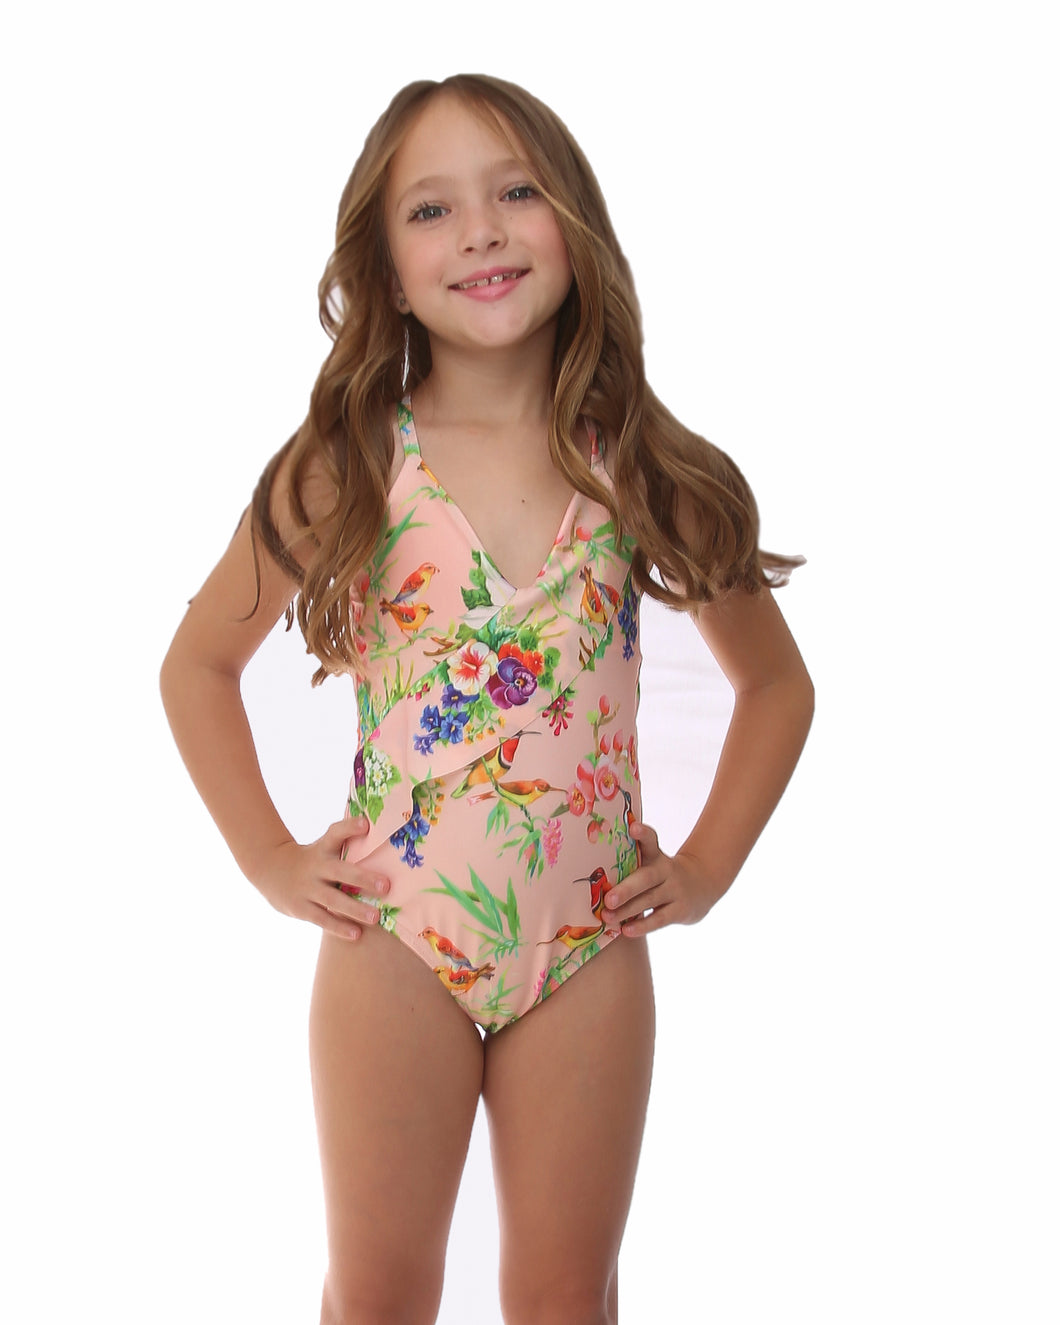 swimwear, traje de baño, girl, toddler, fun, sun, sol, summer, verano, beach, playa, style, fashion, beautiful, instagood, instadaily, shippingwolrdwide, onlineshopping, dayanamendozashop, shopdayanamendoza